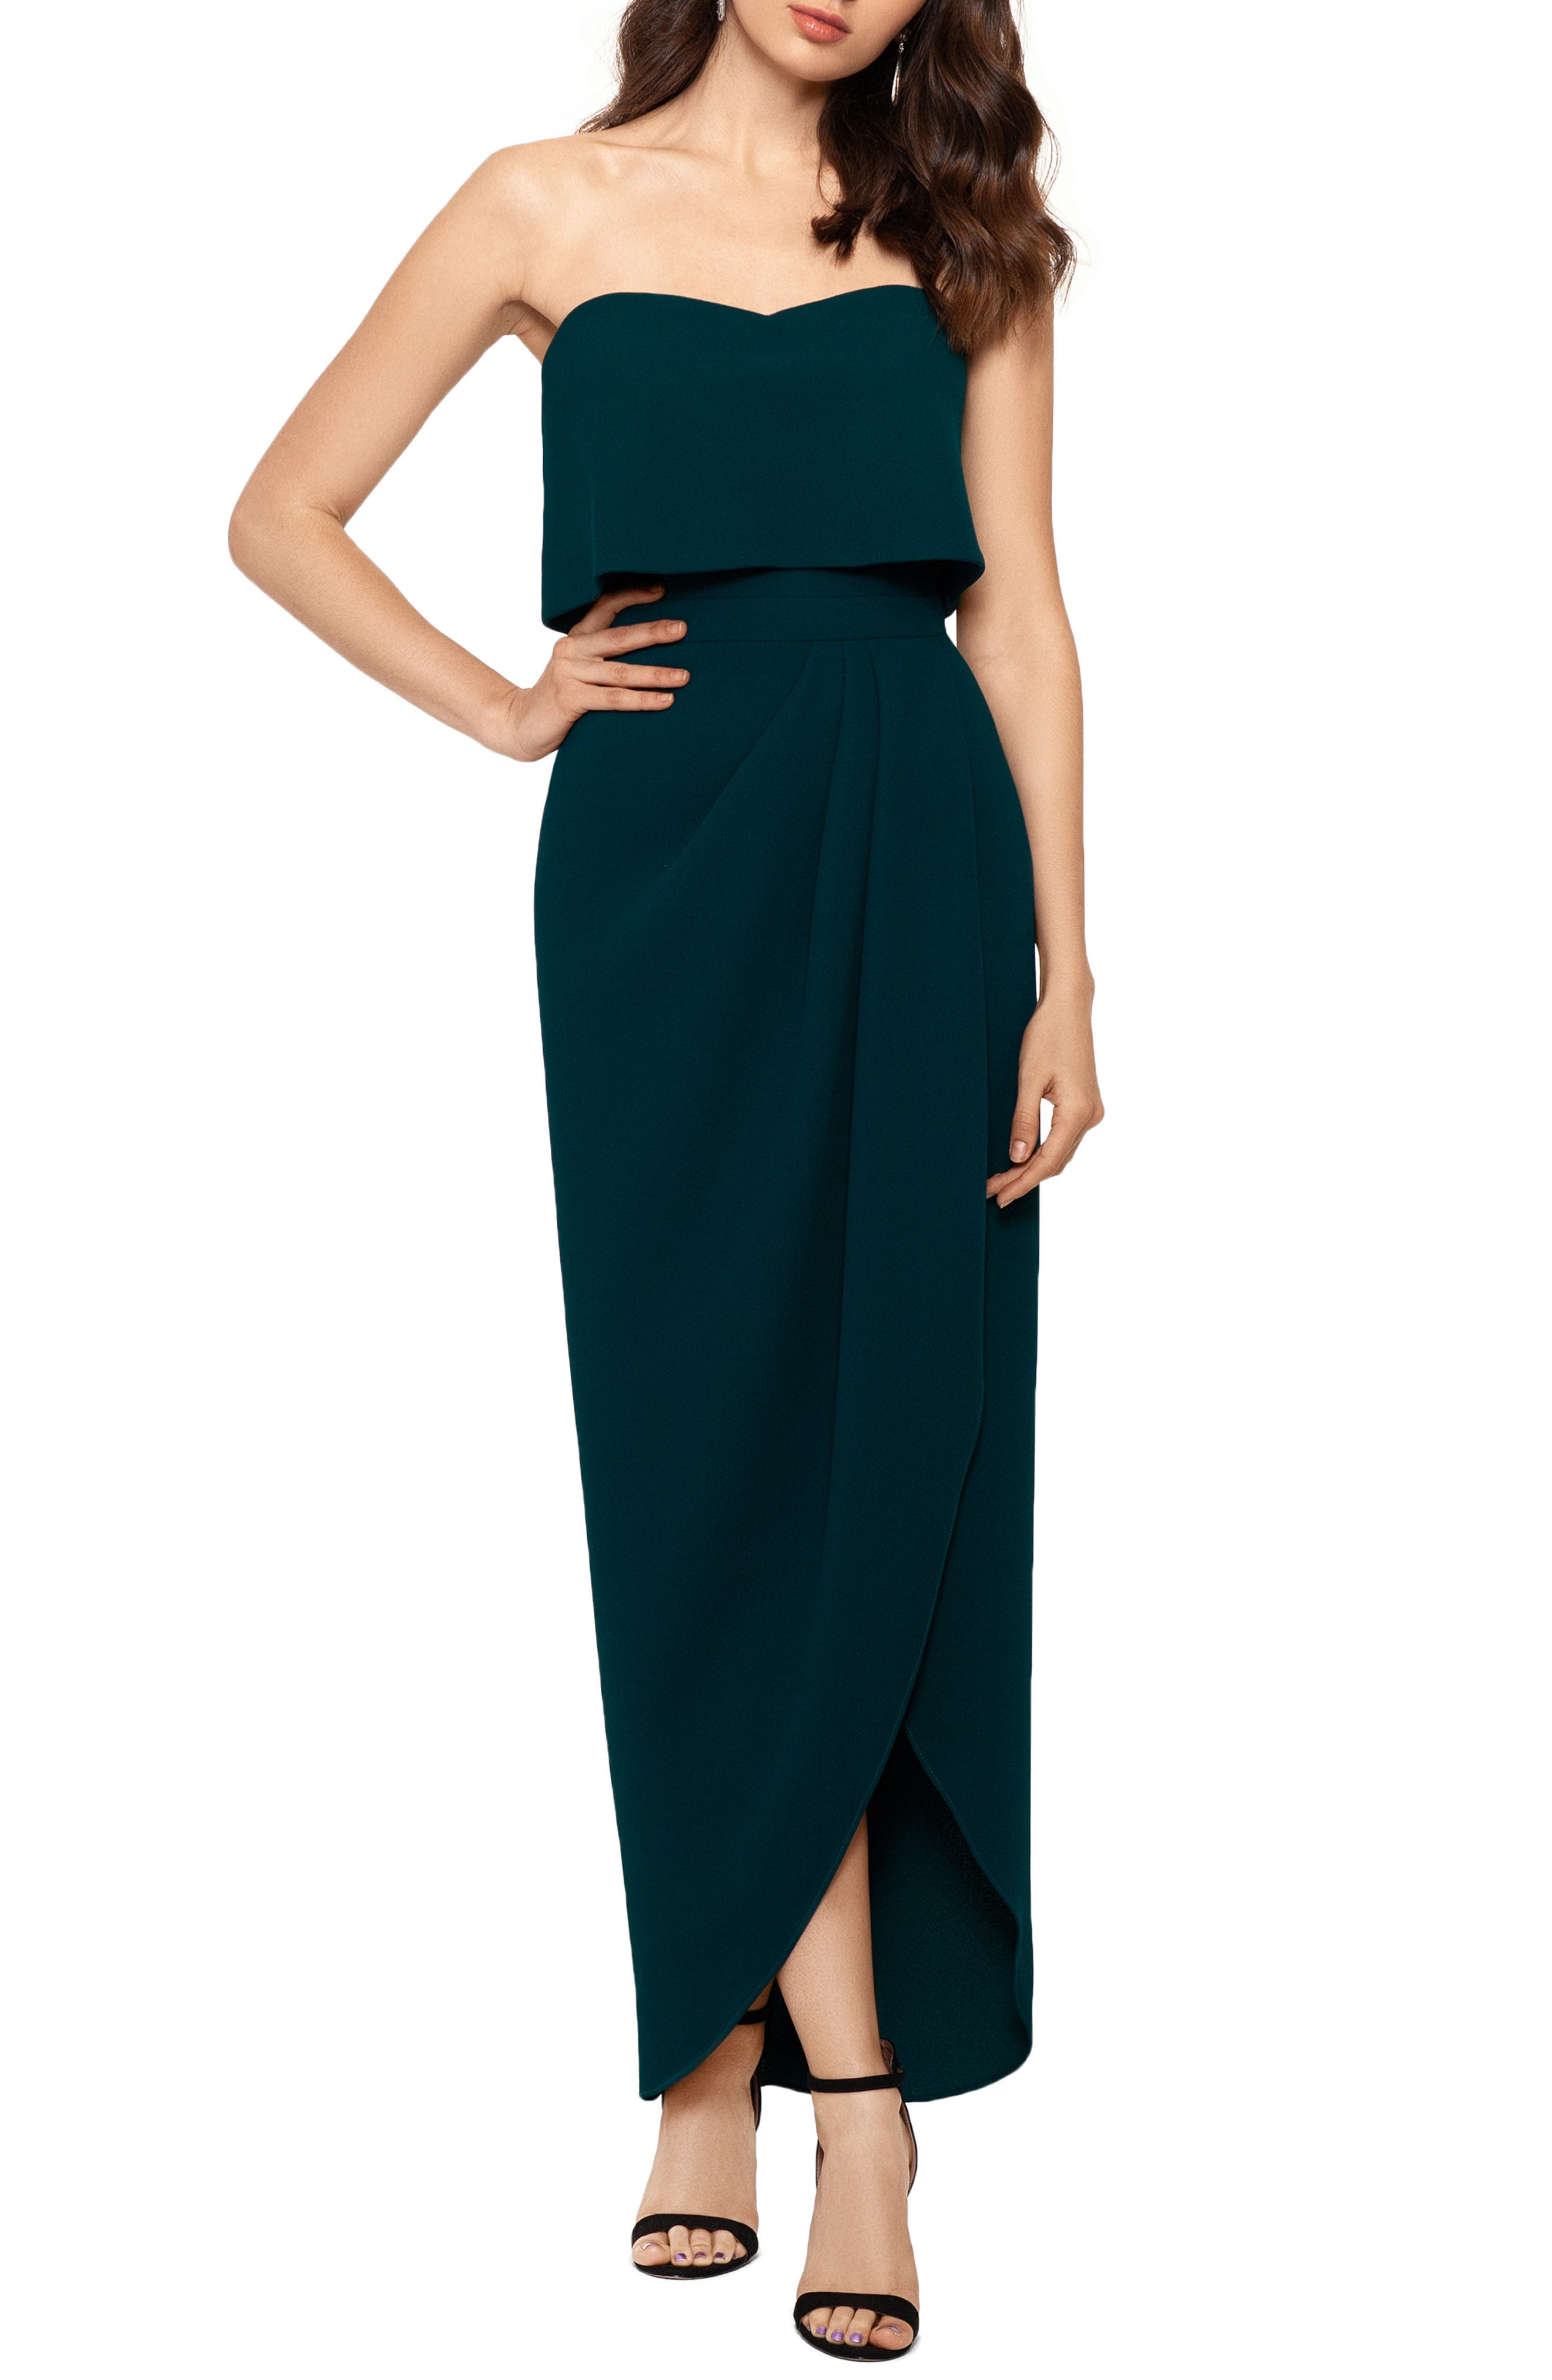 Shape-retaining scuba crepe crafts a simple, elegant gown with a strapless popover bodice and a full-length tulip-hem skirt. Style Name: Xscape Strapless Popover Scuba Crepe Gown. Style Number: 5935417. Available in stores.